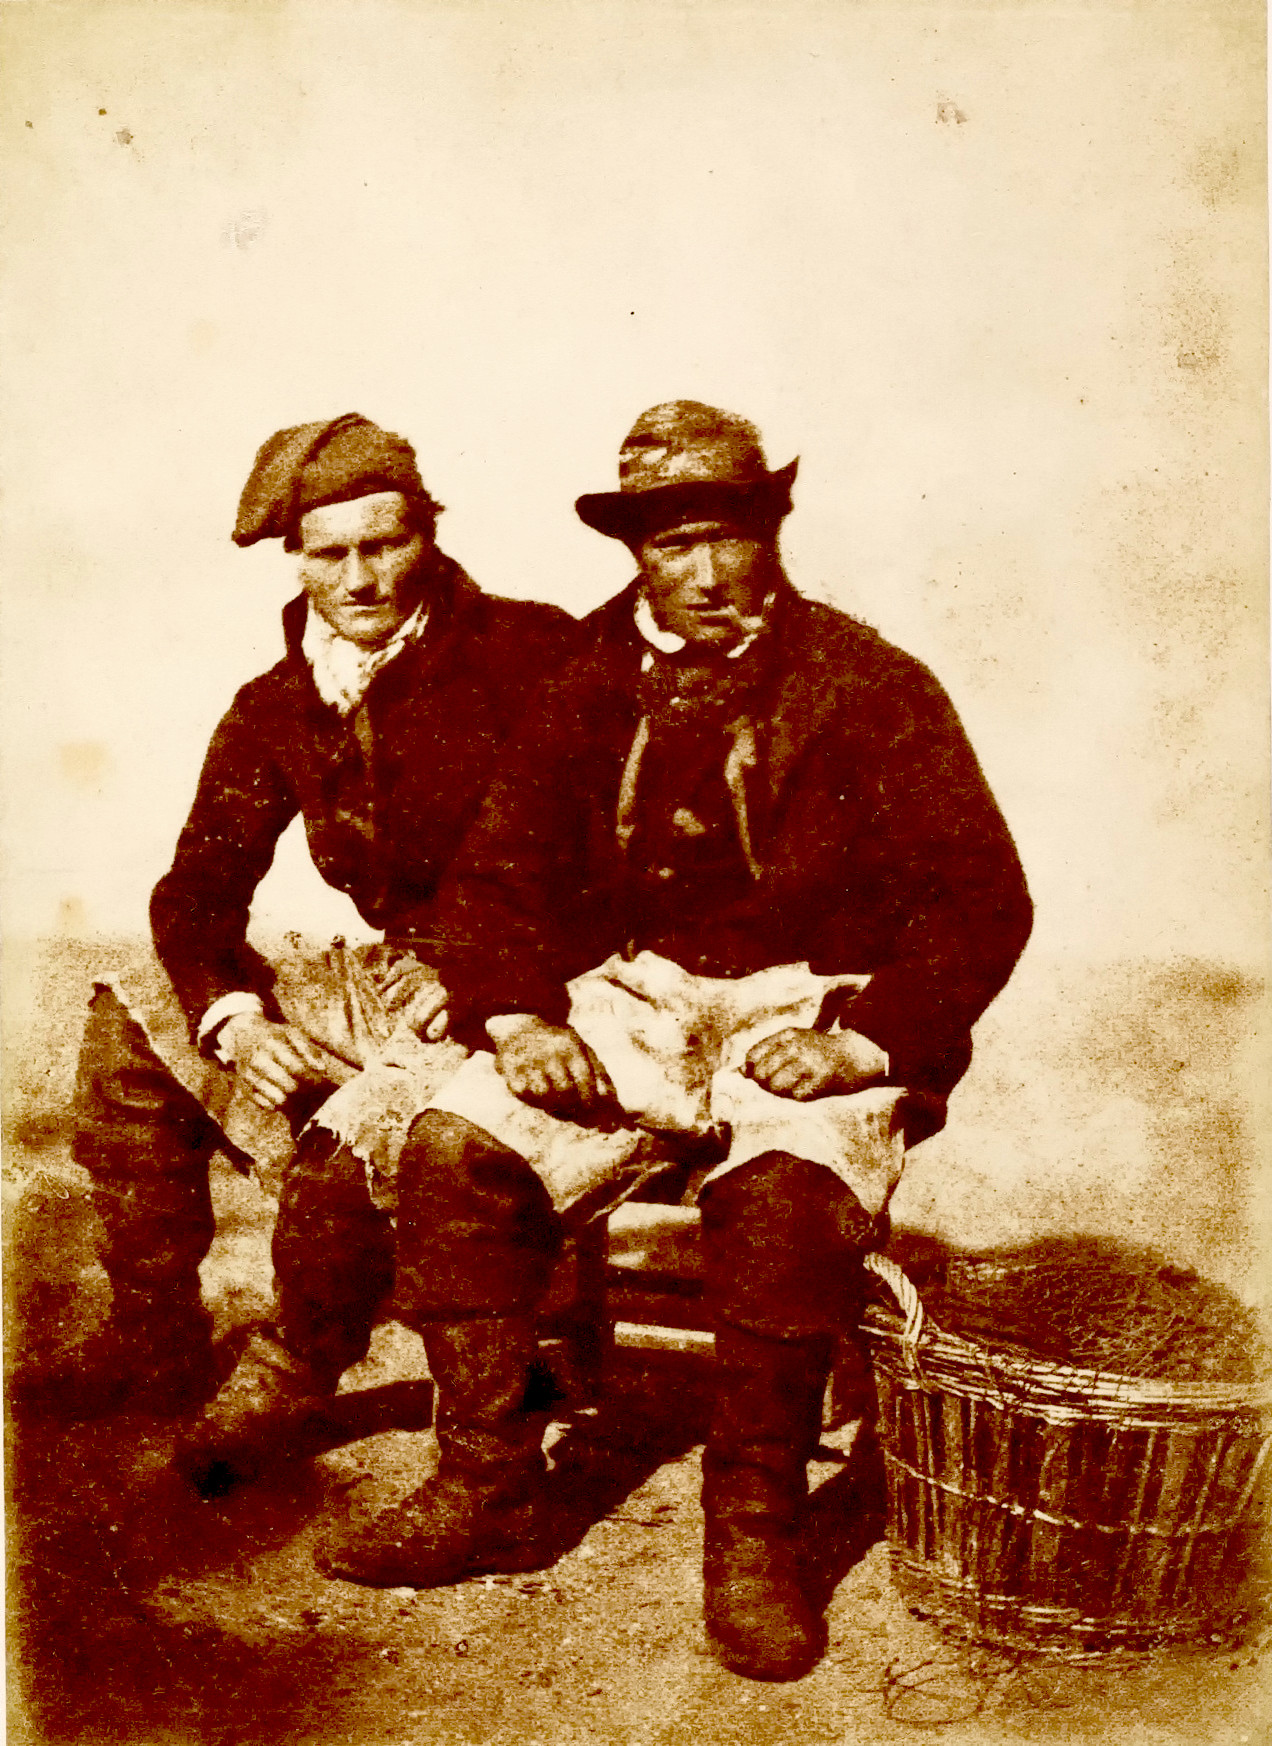 David Young and Unknown Man, Newhaven